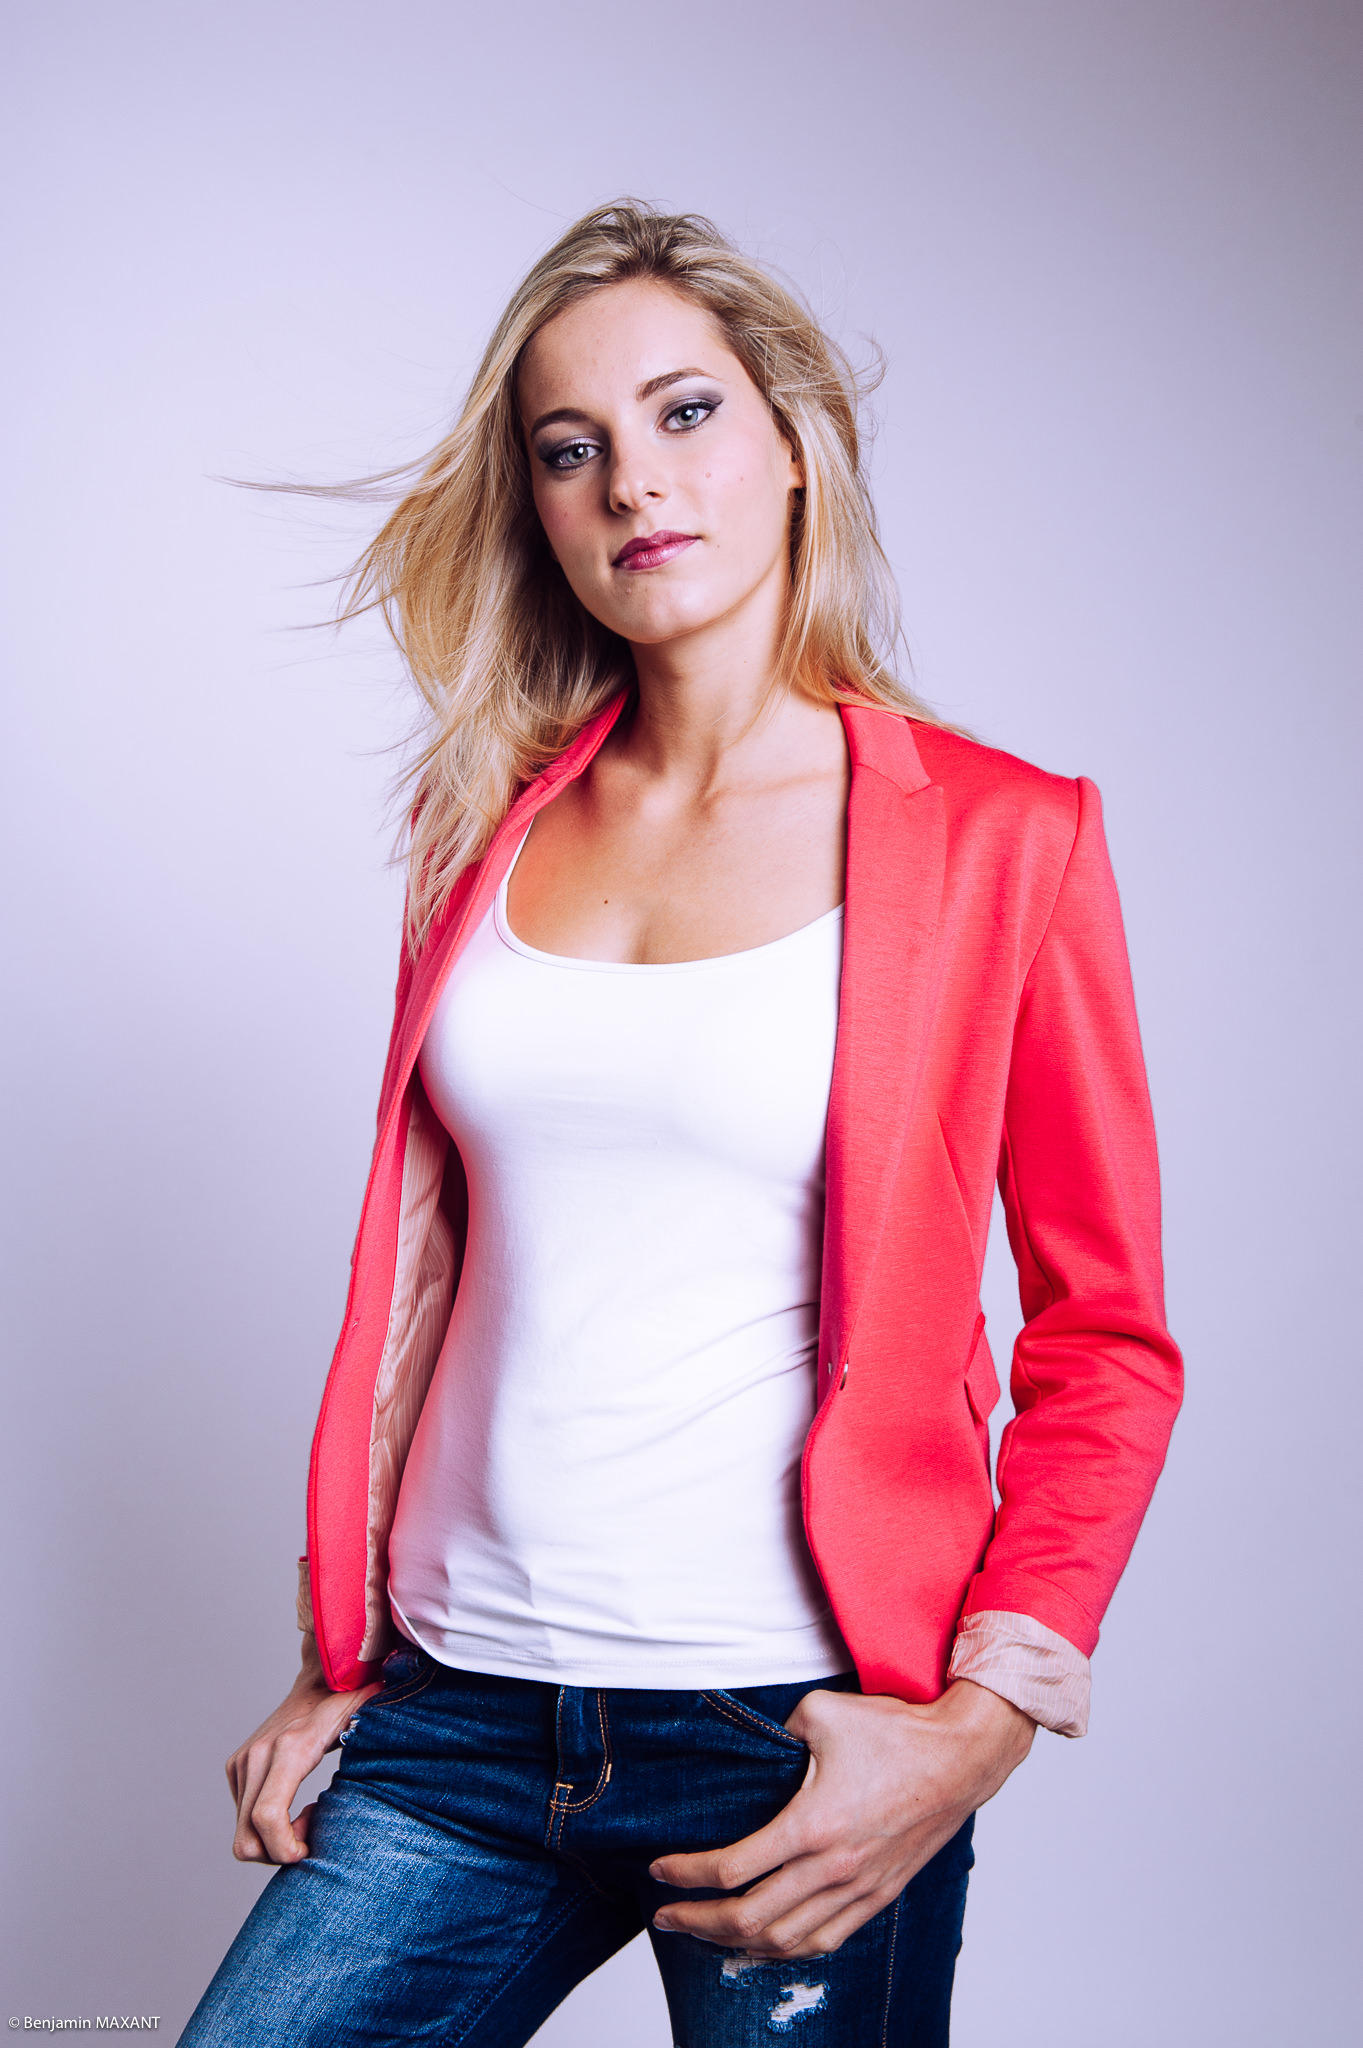 Casual photo shoot in studio jeans red blonde model jacket